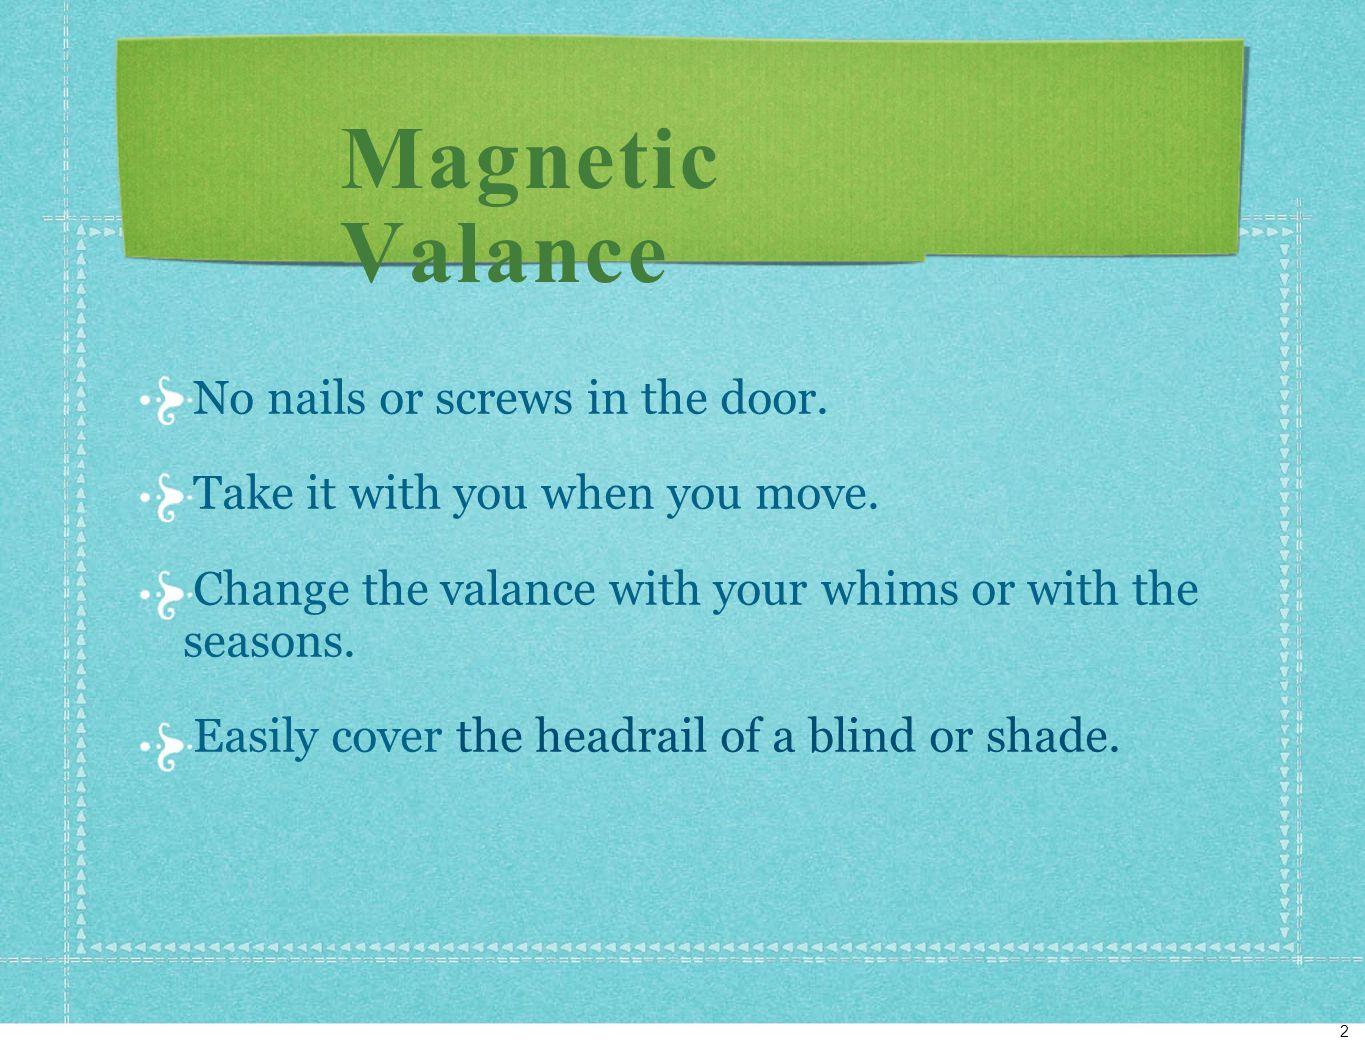 Magnetic Valance No nails or screws in the door. Take it with you when you move.